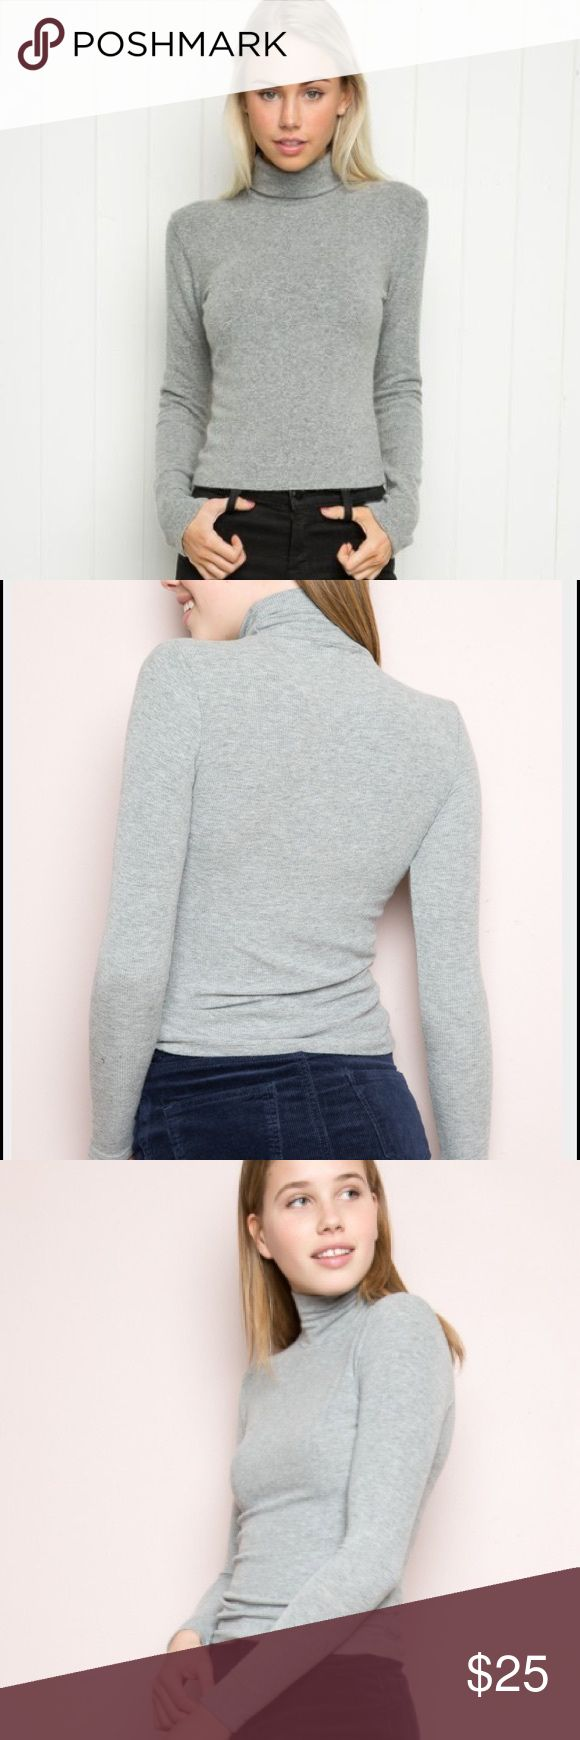 Brandy Melville light gray ribbed turtleneck top Brandy Melville light gray ribbed turtleneck top.  Only worn and washed once. Turtleneck sweater material but light. Brandy Melville Tops